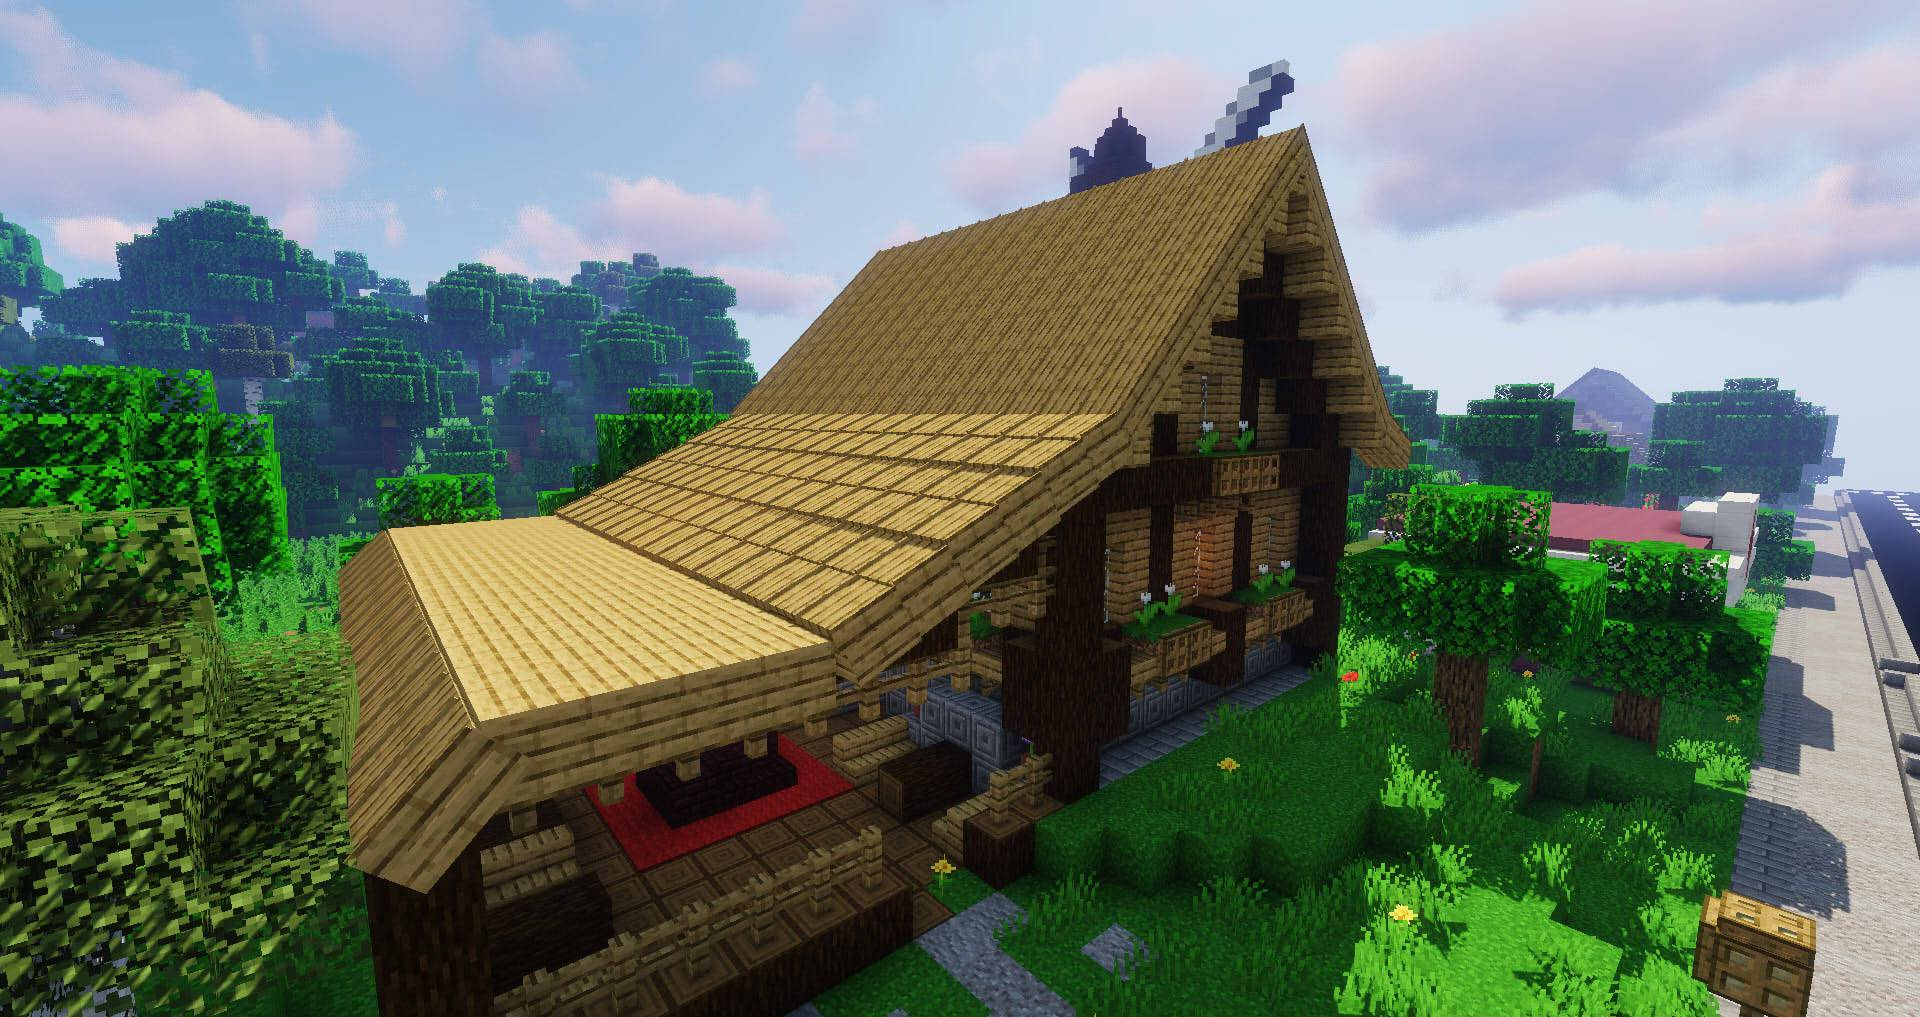 Macaw S Roofs Mod 1 15 2 1 14 4 Build Roofs With Actual